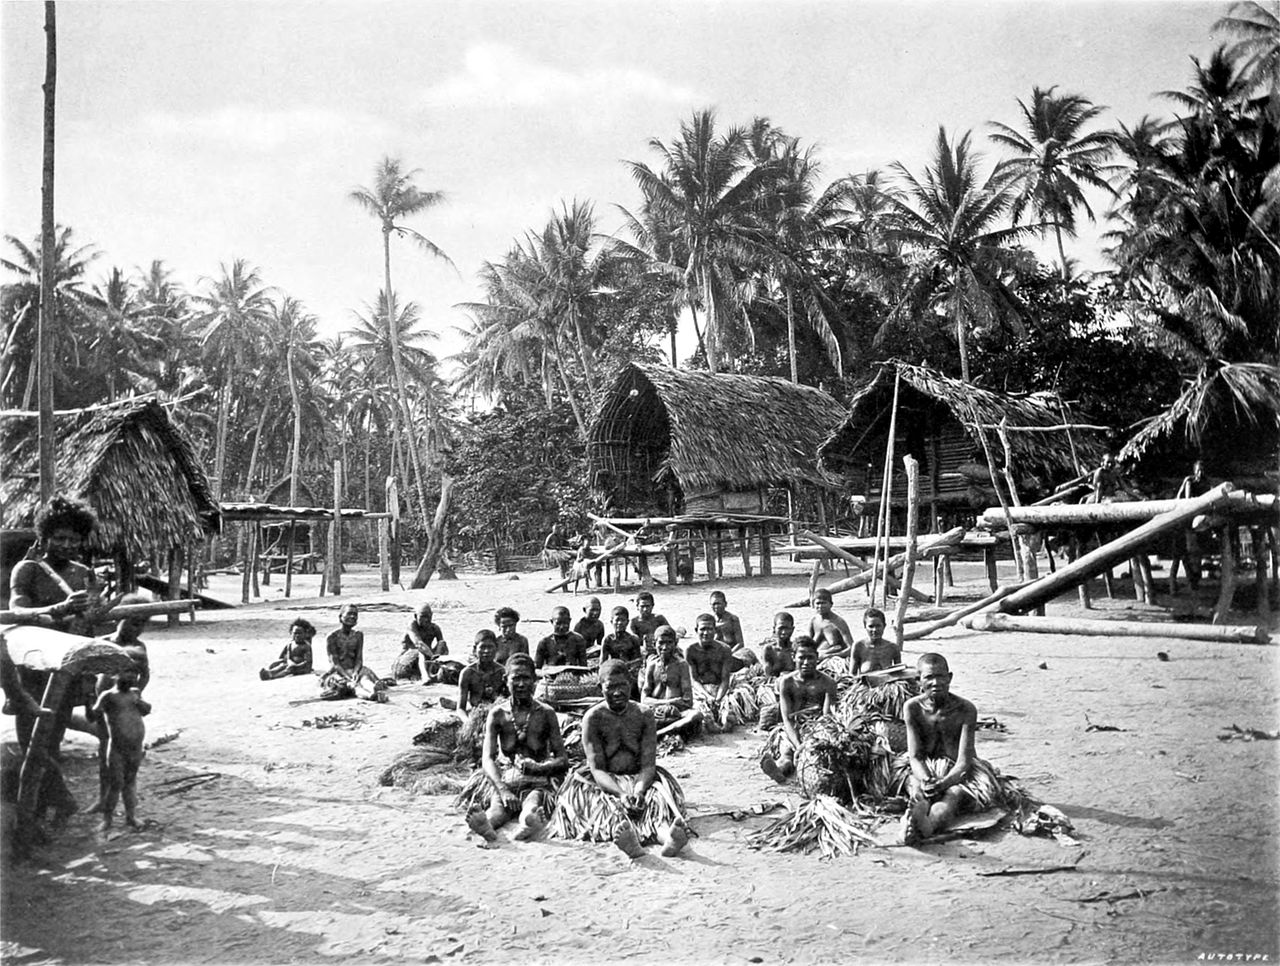 Kerepunu women at the marketplace of Kalo, British New Guinea, 1885  John William Lindt  -  File:Picturesque New Guinea.djvu   I found the unspoiled lifestyles of different cultures fascinating.